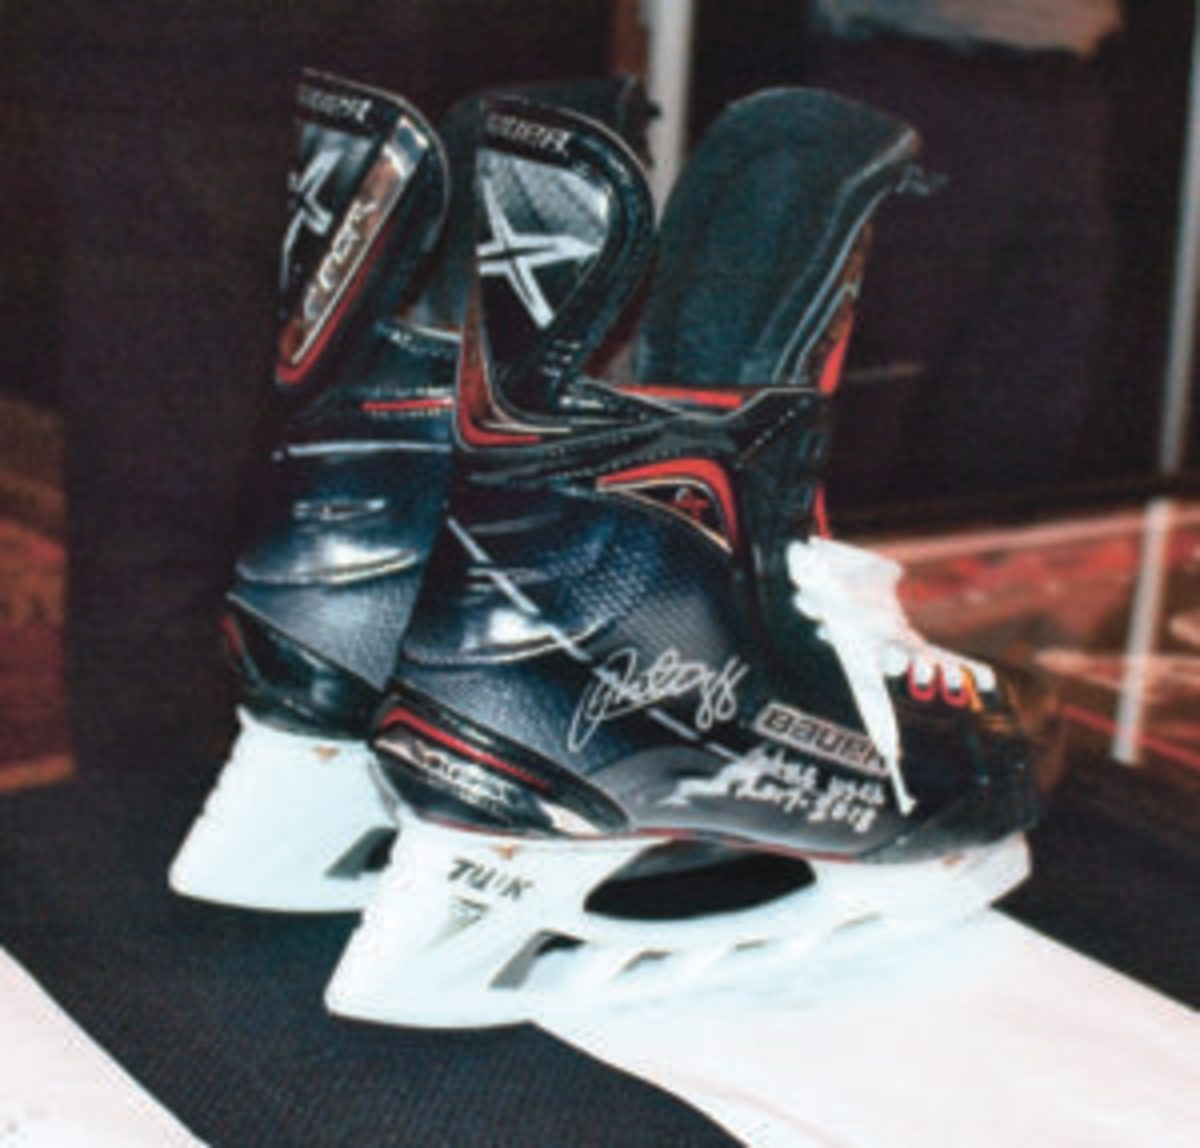 Patrick Kane's autographed game-used skates sold for $725 in a silent auction.